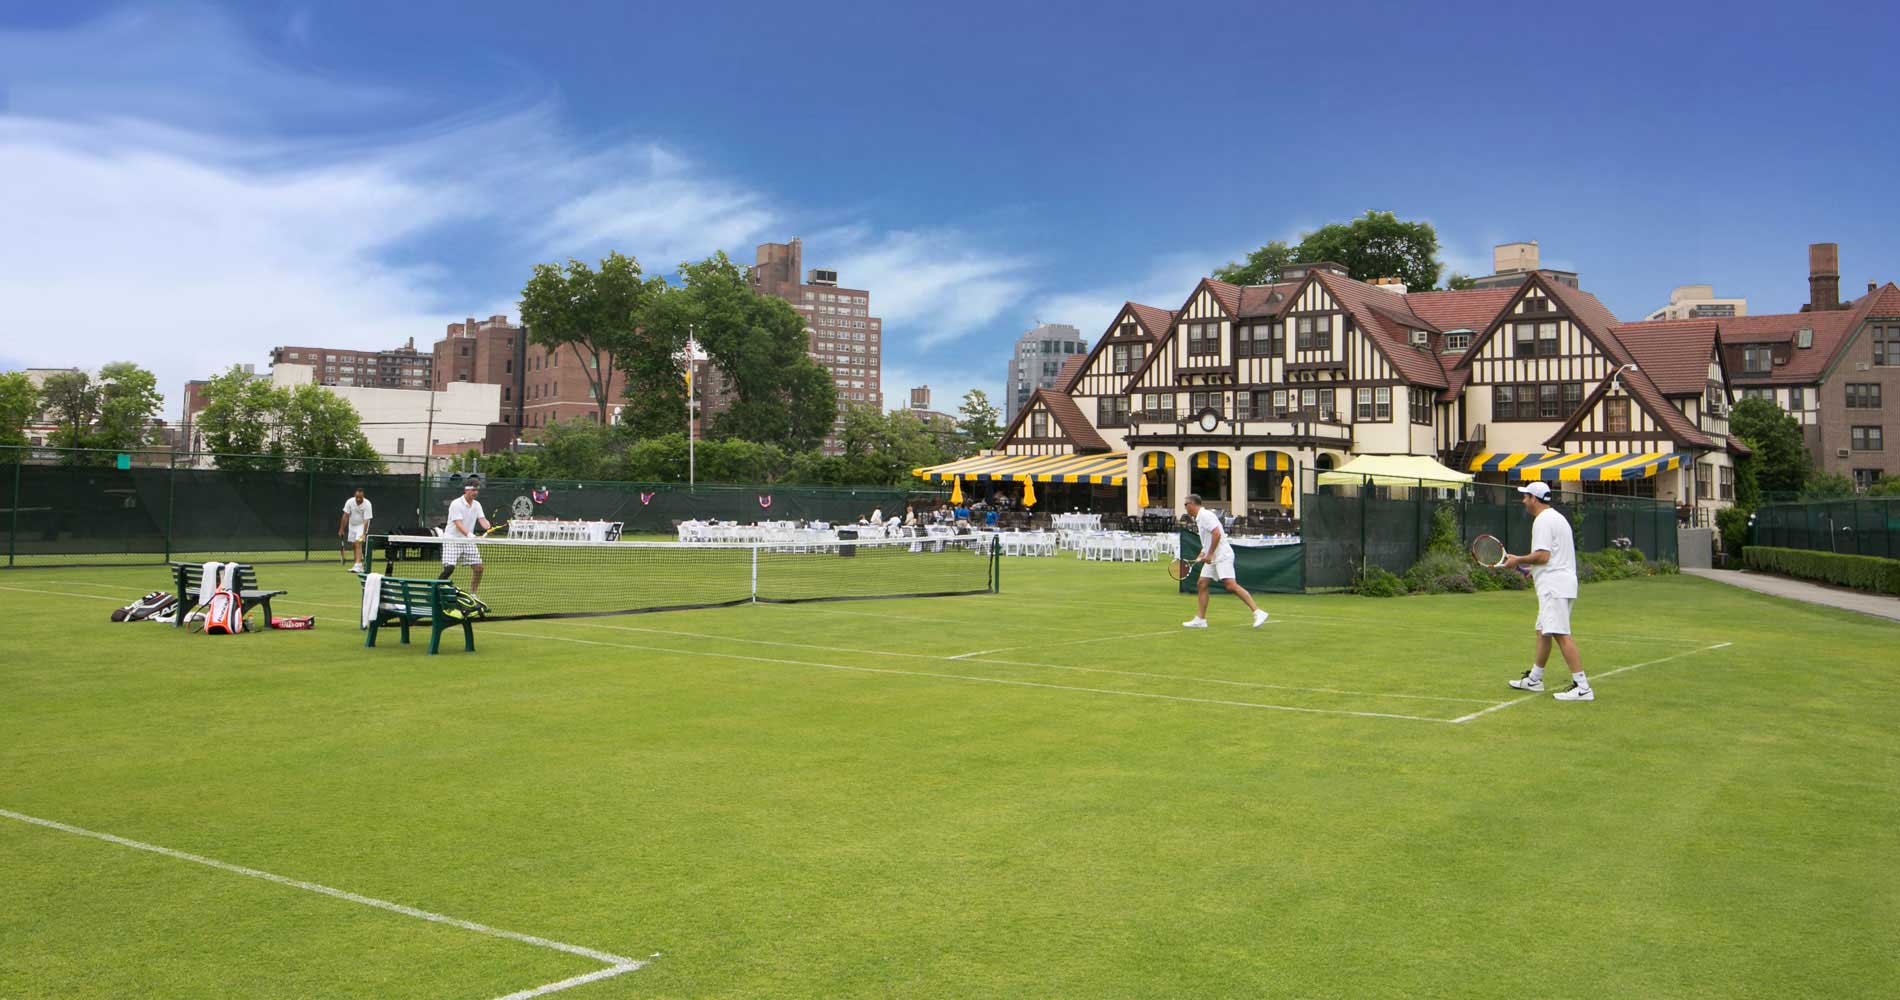 The West Side Tennis Club at Forest Hills | Forest Hills Tennis: Historic Home of the US Open